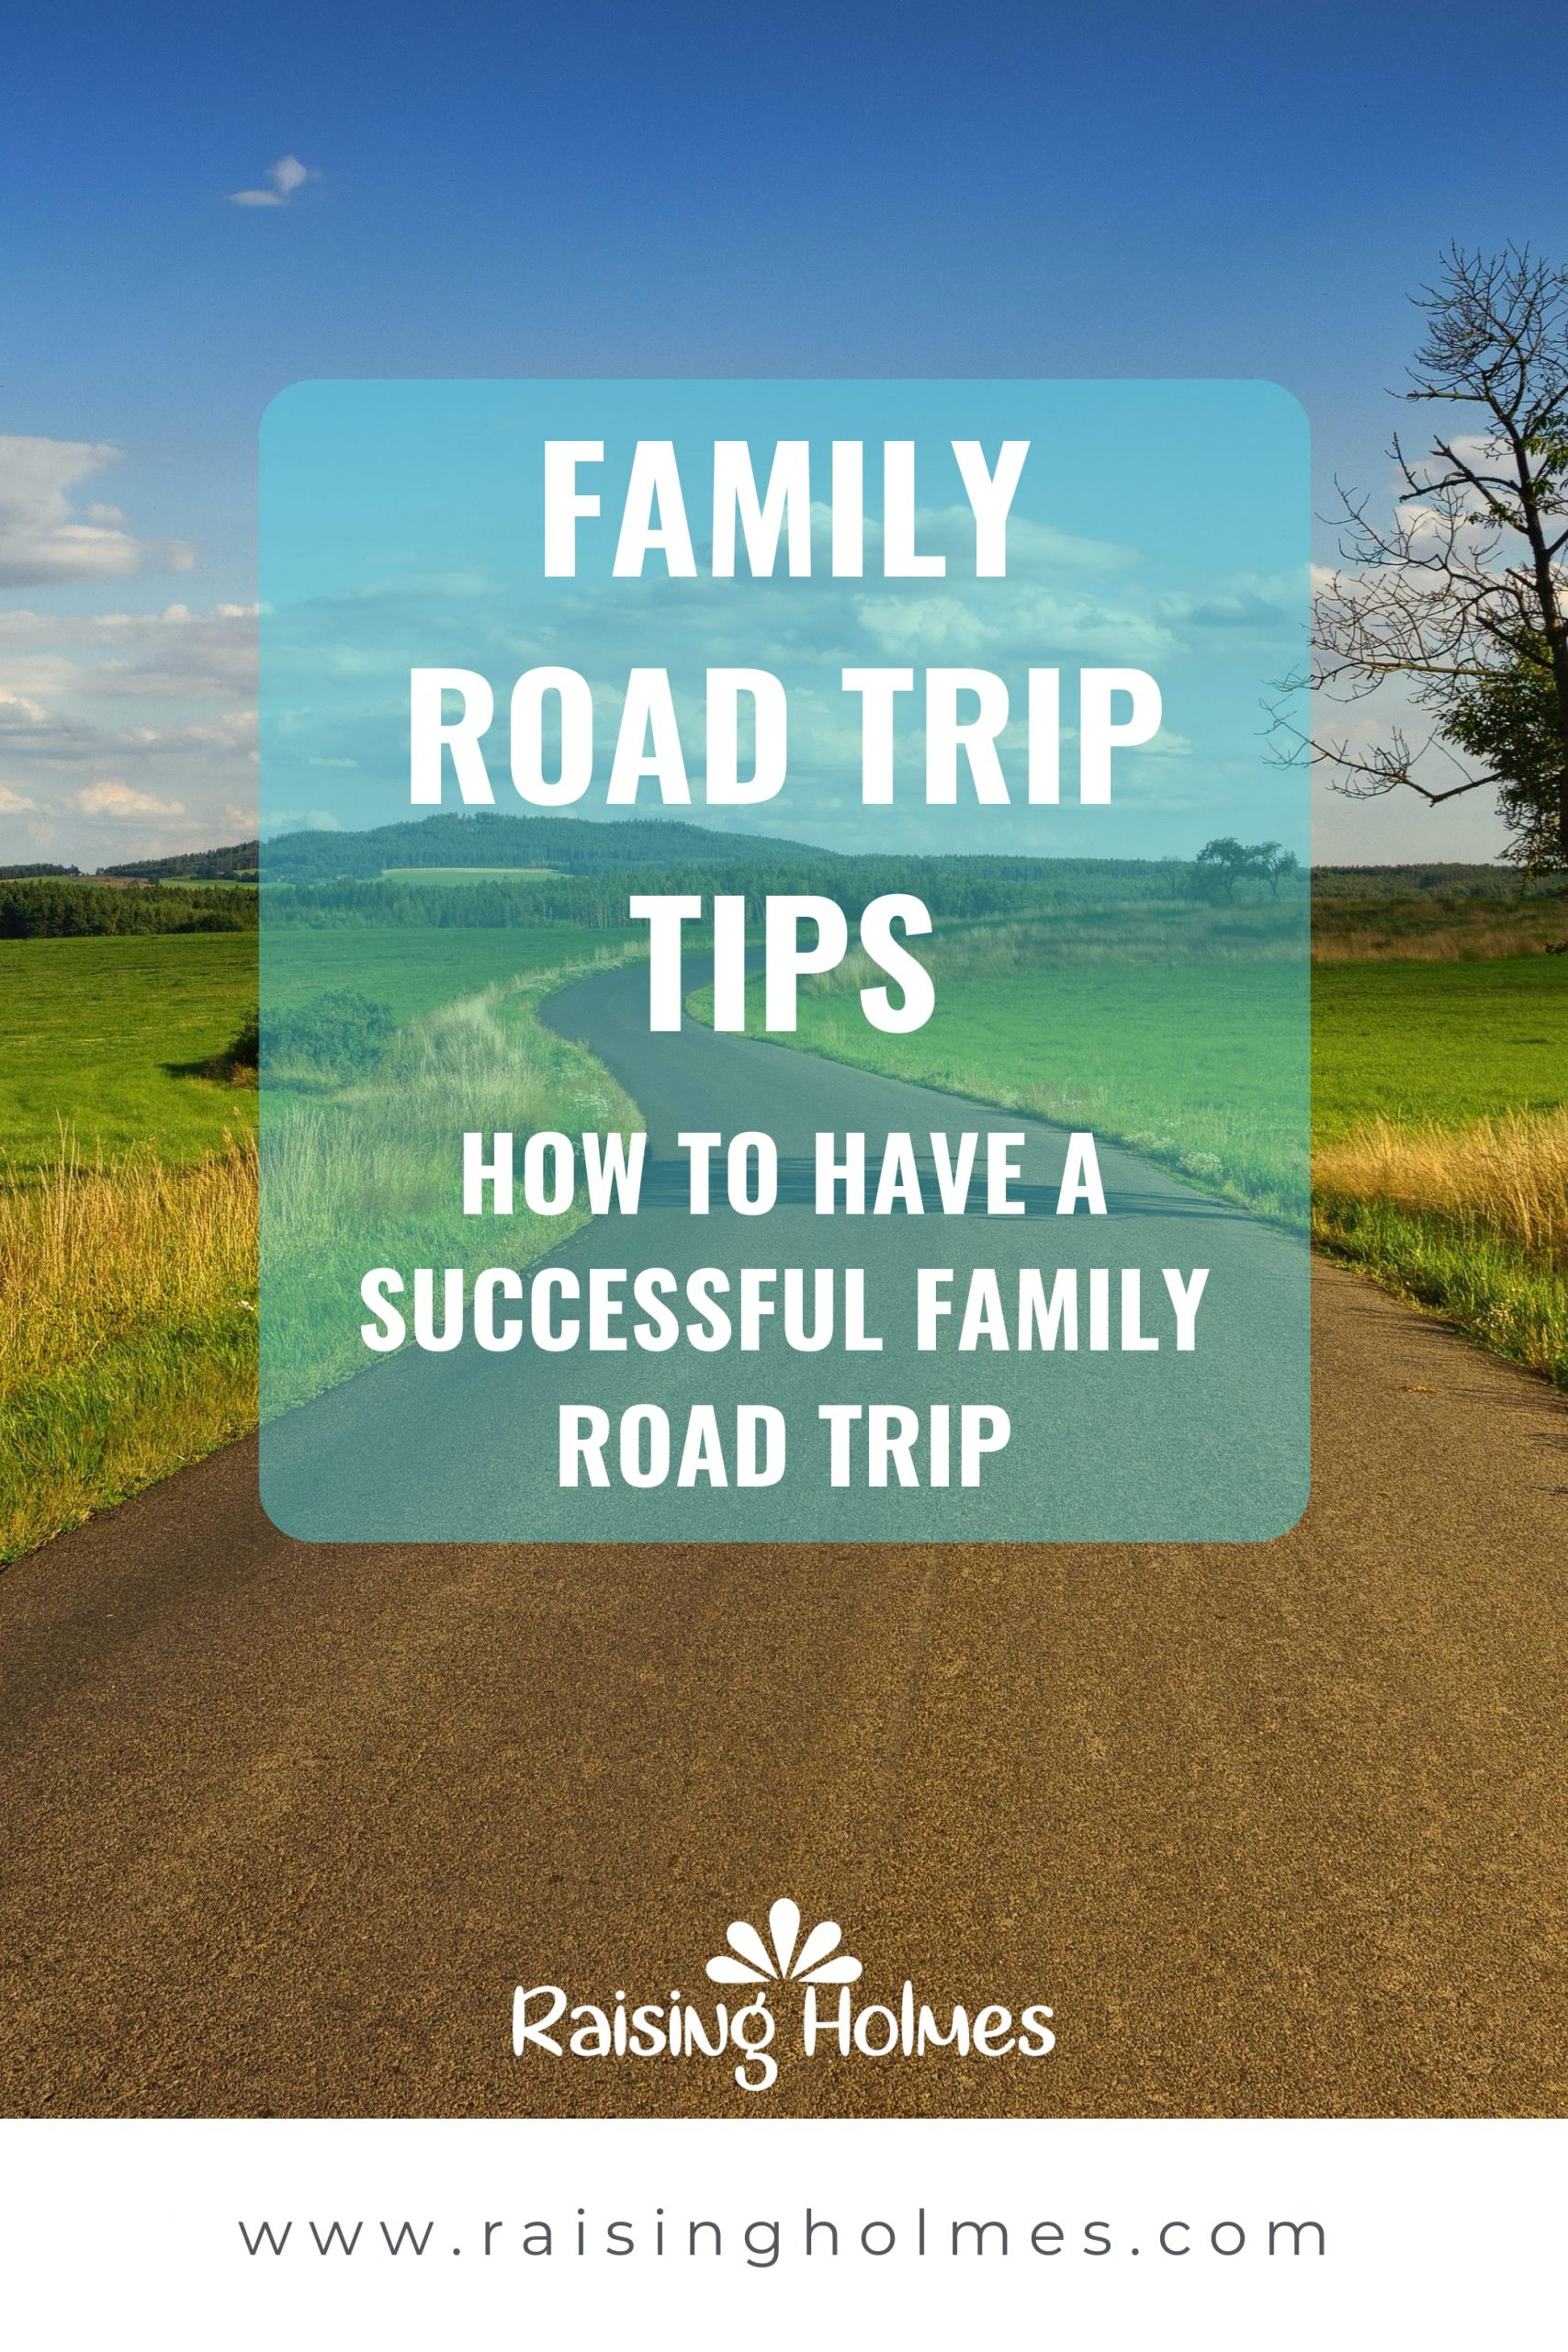 Road Trip Tips How to have a successful family road trip. All of our tips and tricks to getting the most out of your long car journeys with your kids. Road trips are awesome!